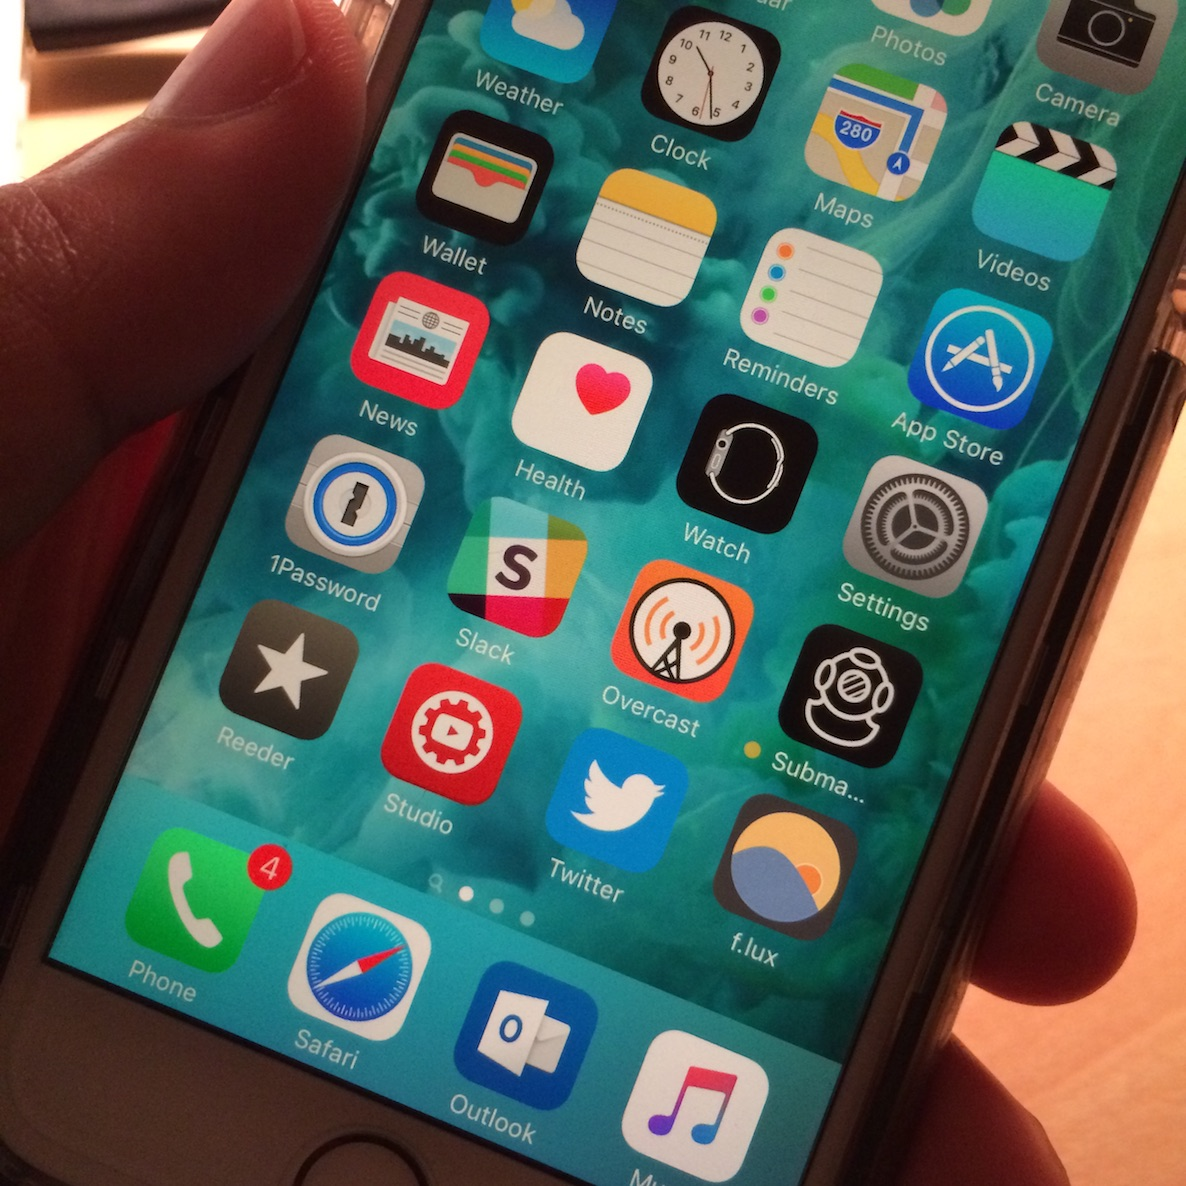 iPhone flux sideload iOS 9